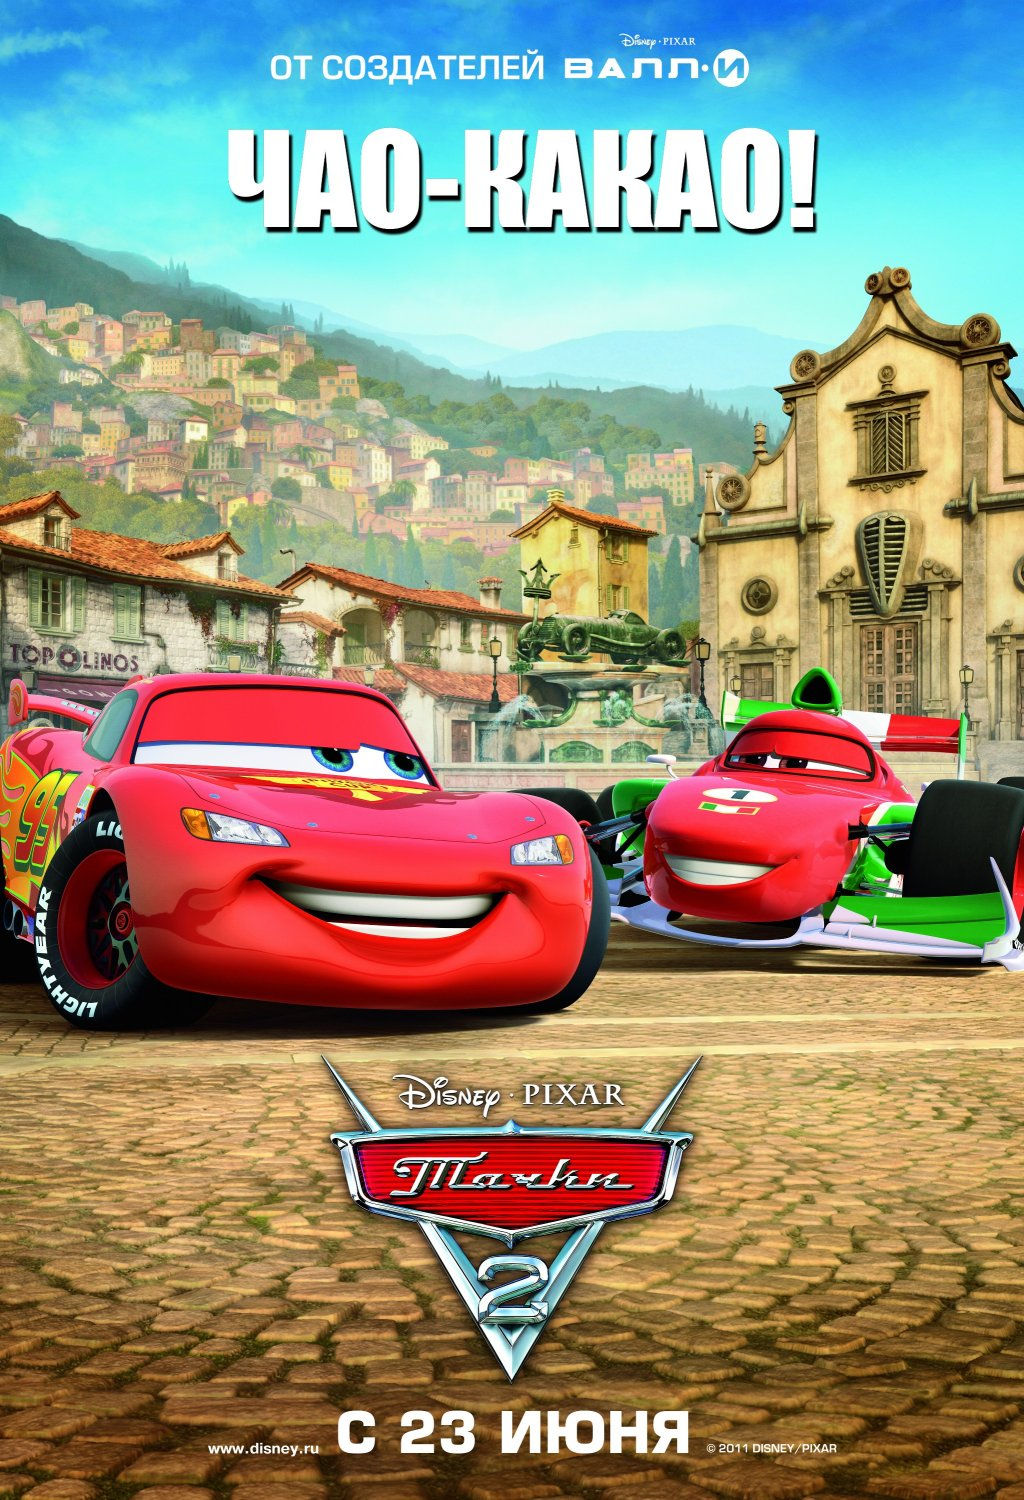 cars 2 2011 amazing movie posters. Black Bedroom Furniture Sets. Home Design Ideas